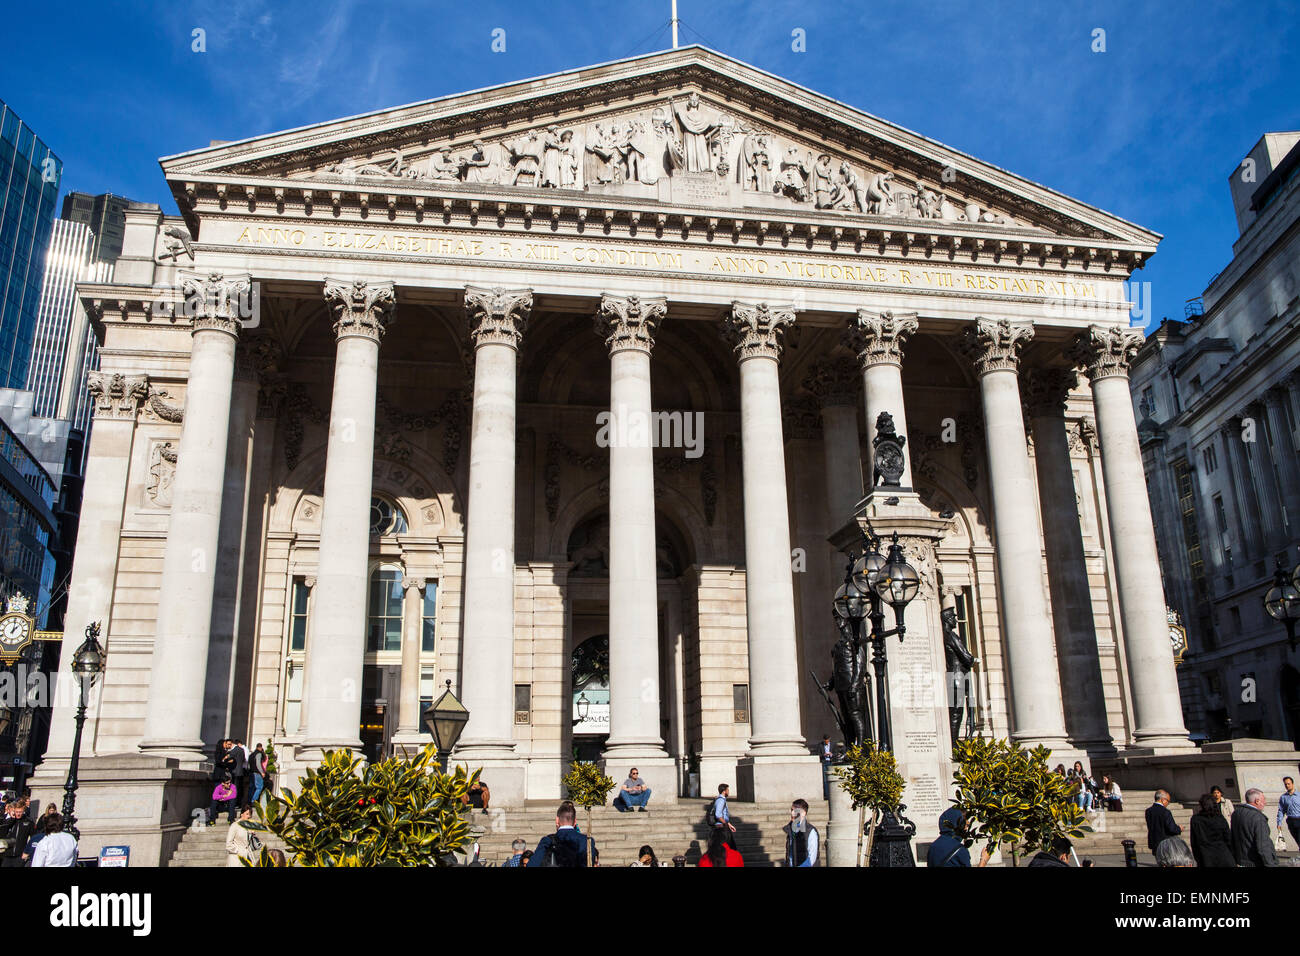 LONDON, UK - APRIL 20TH 2015: A view of the Royal Exchange in the City of London on 20th April 2015. - Stock Image